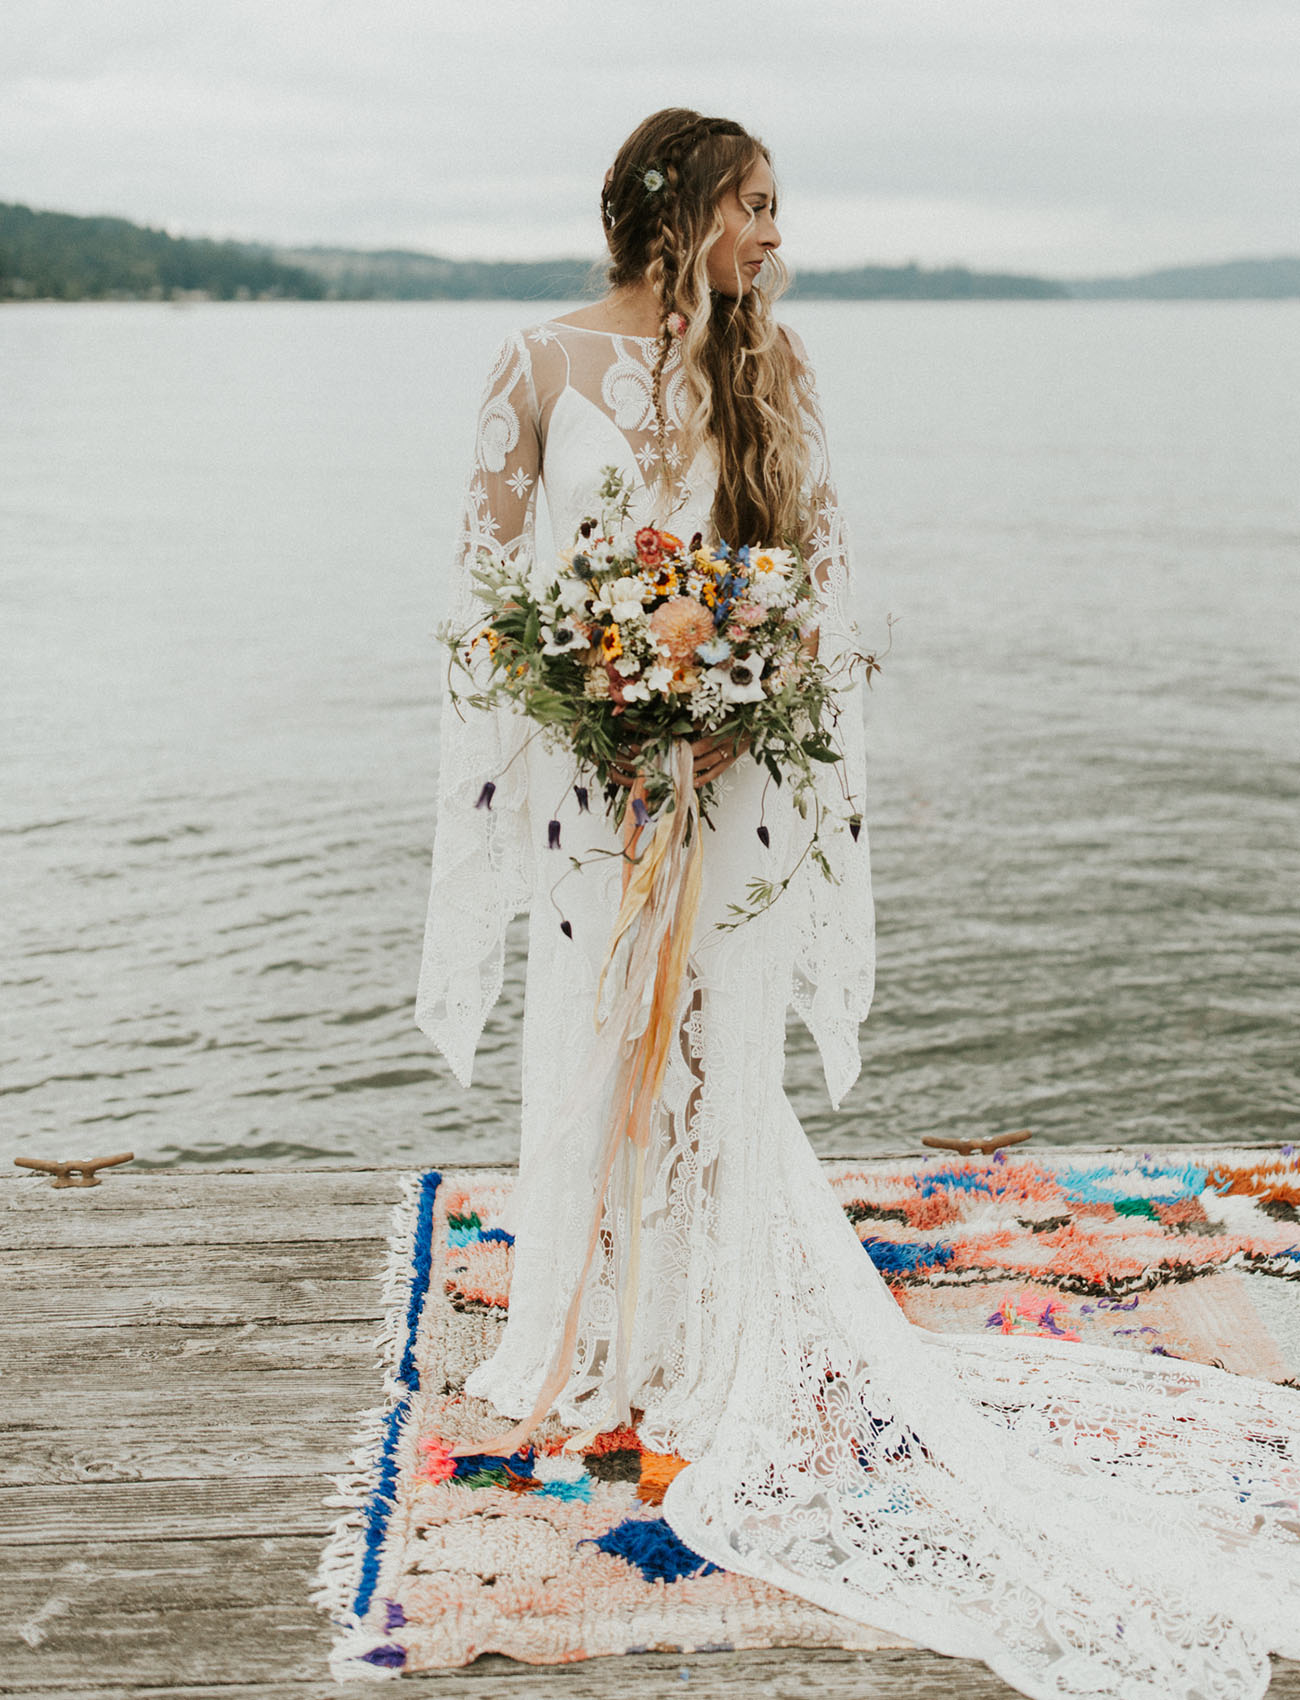 The bride was wearing a boho lace wedding dress with bell sleeves and a train by Rue De Seine